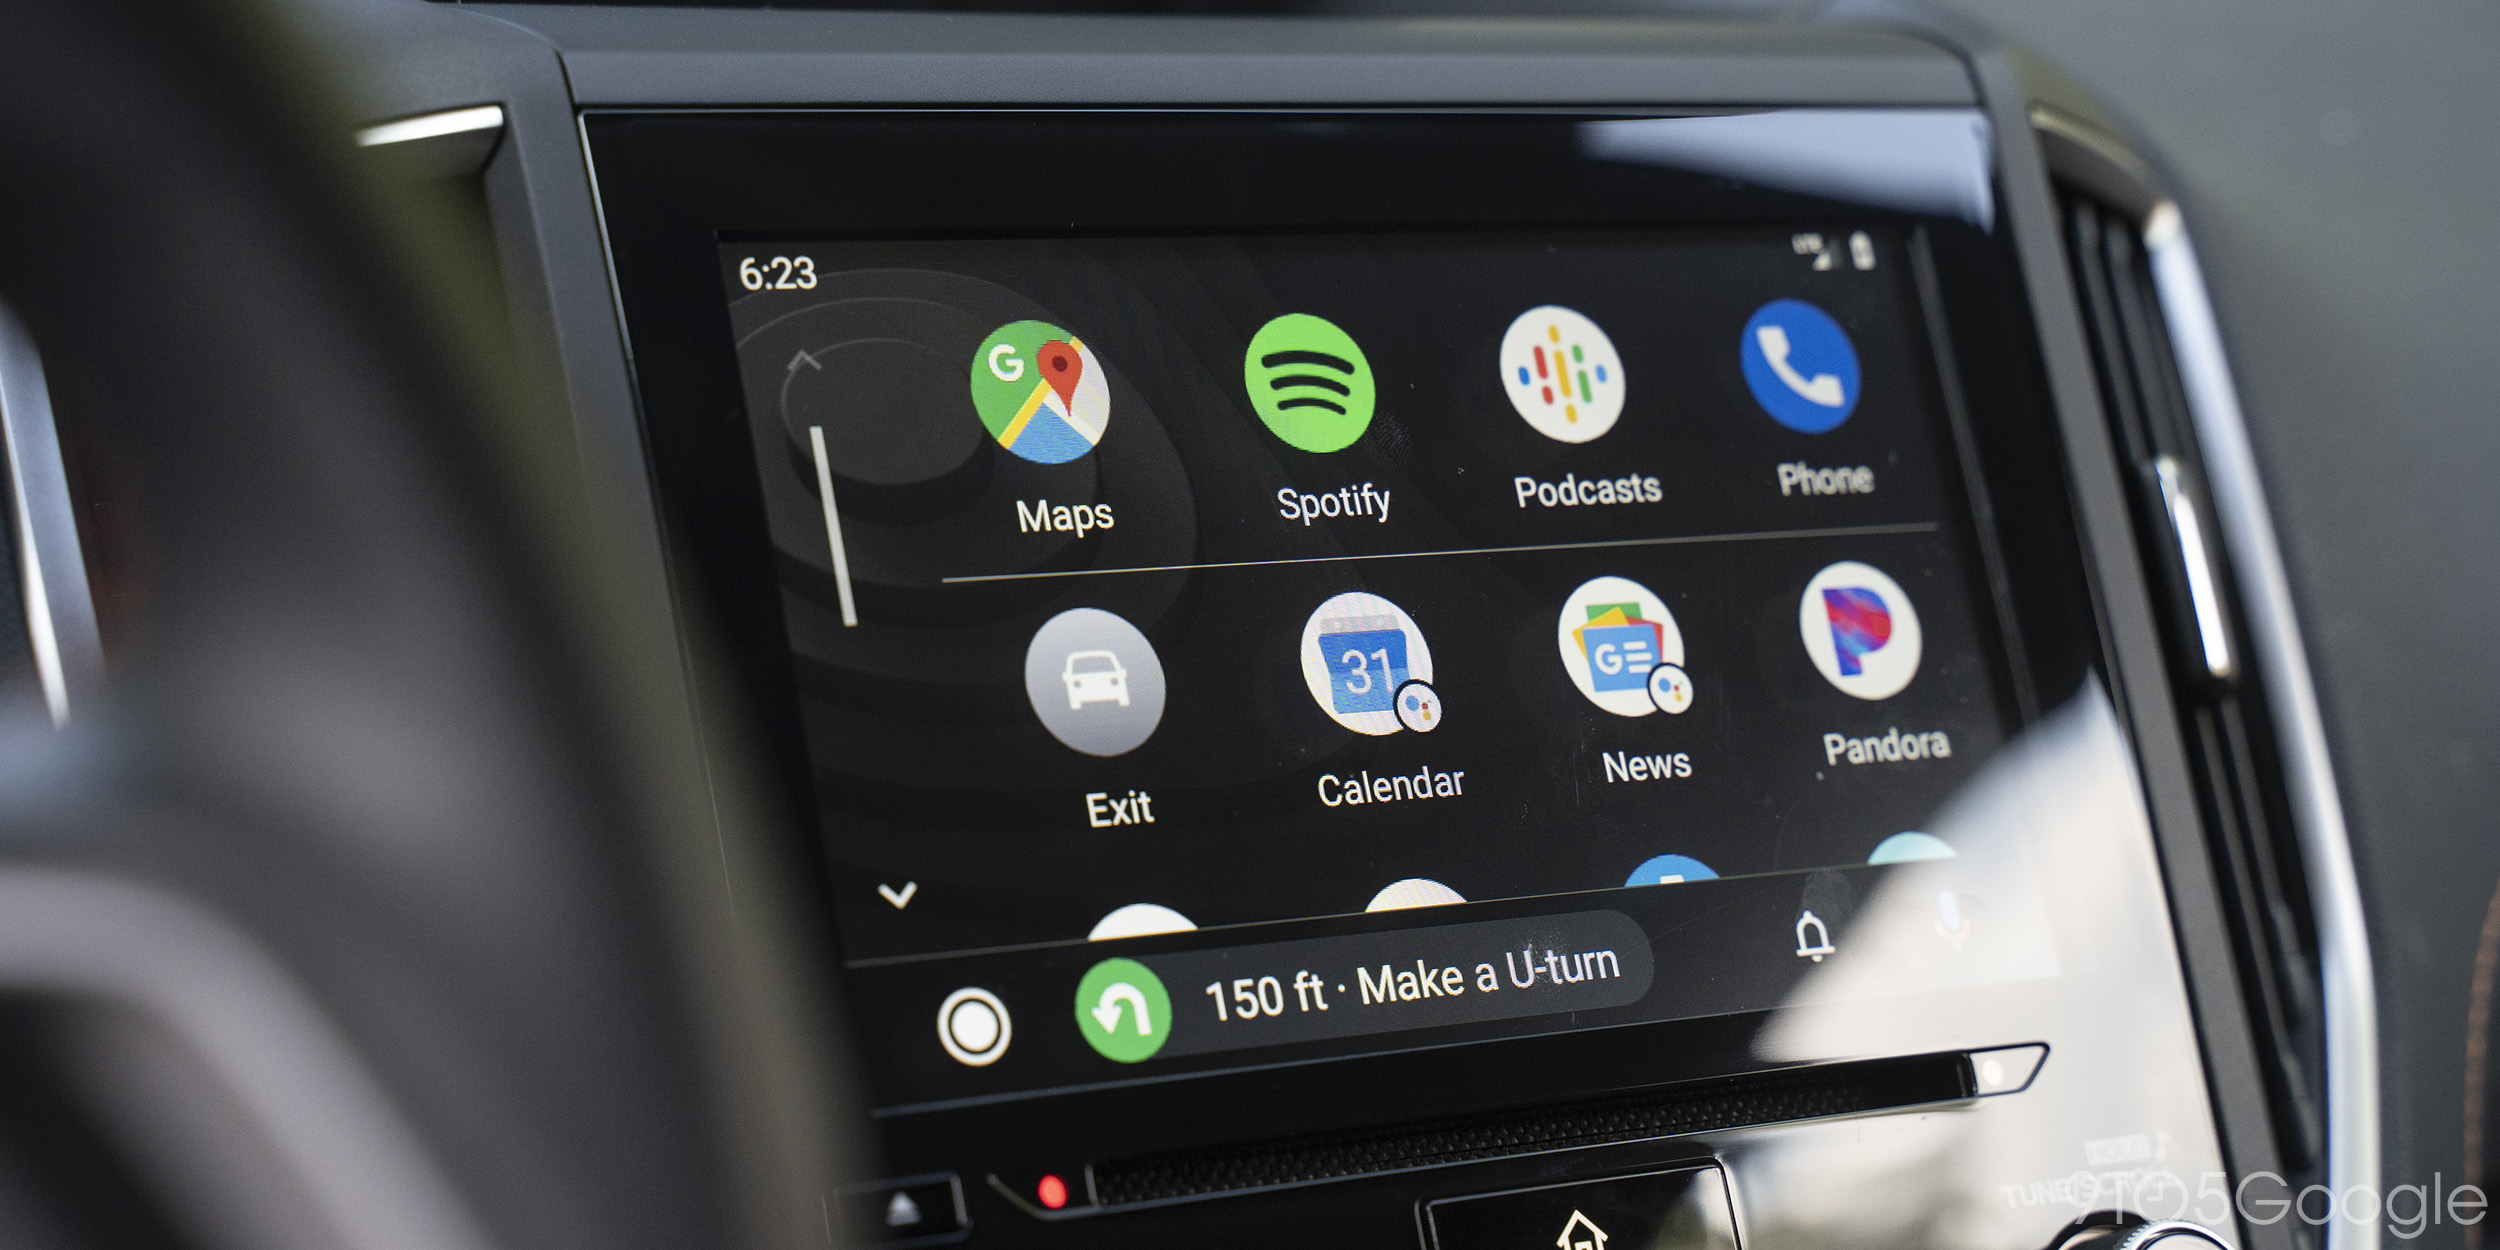 Google's new Android Auto kills the brains [Video] - 9to5Google